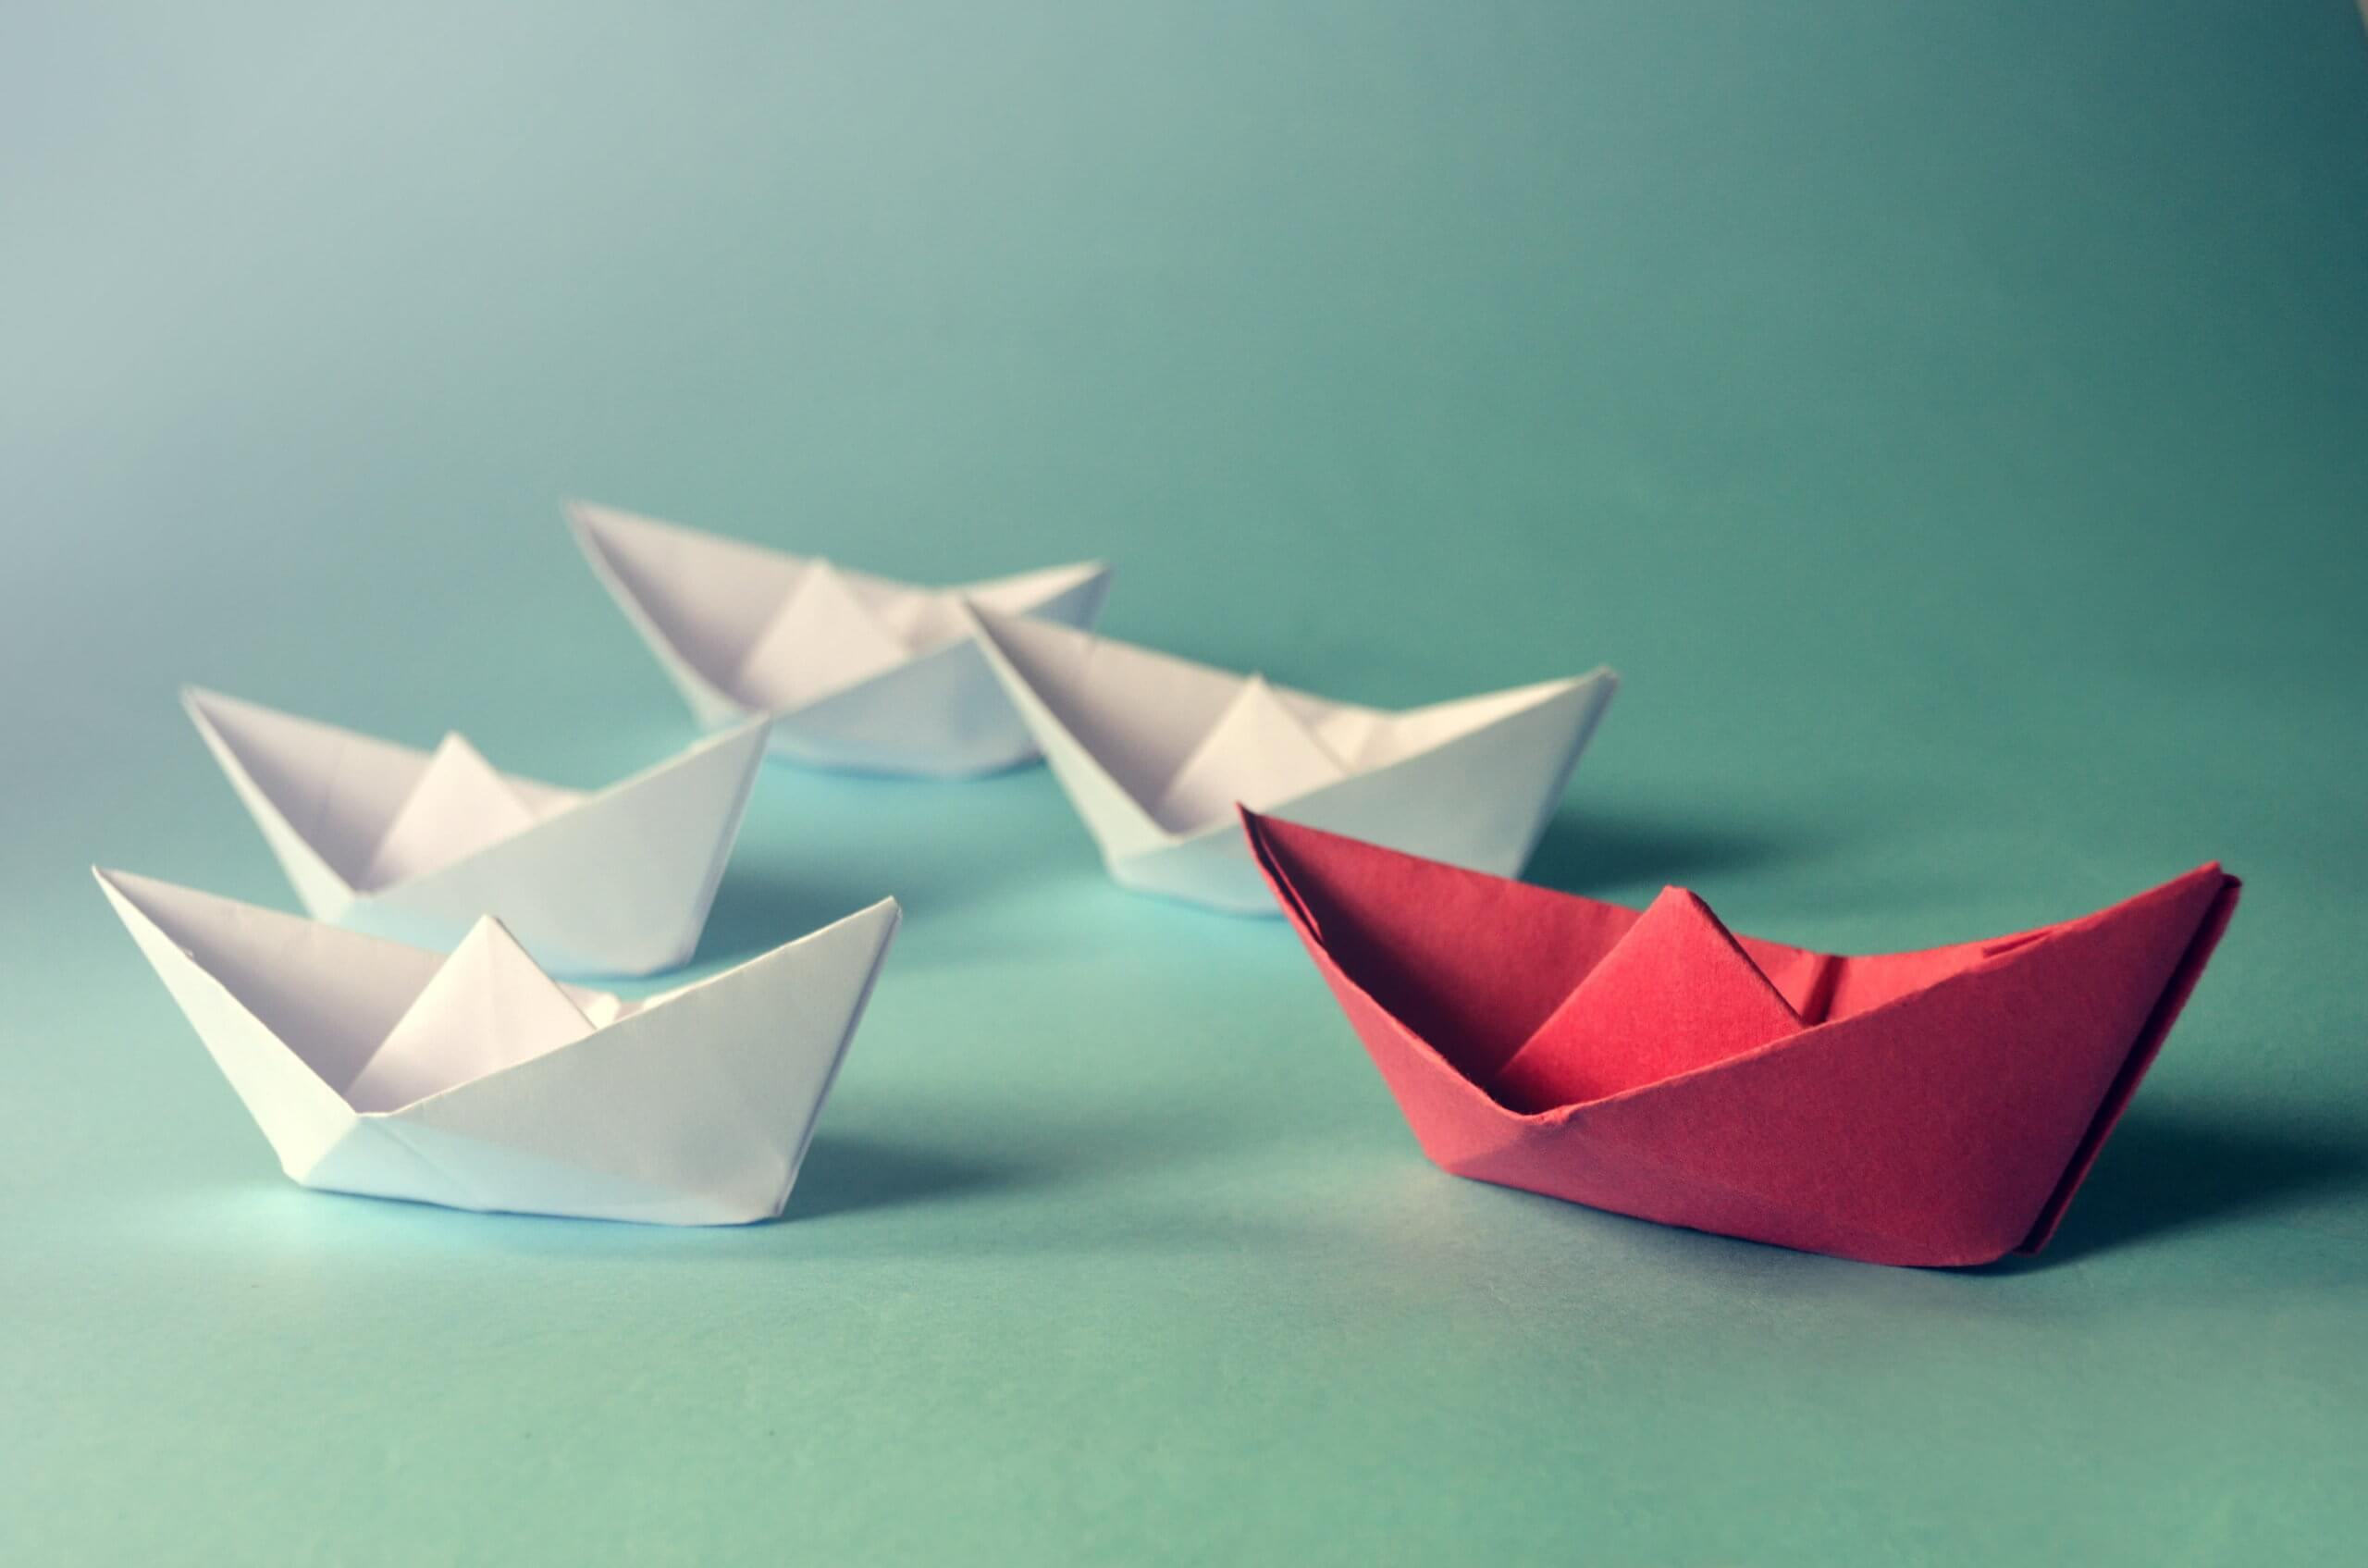 5 tips to improve your leadership skills